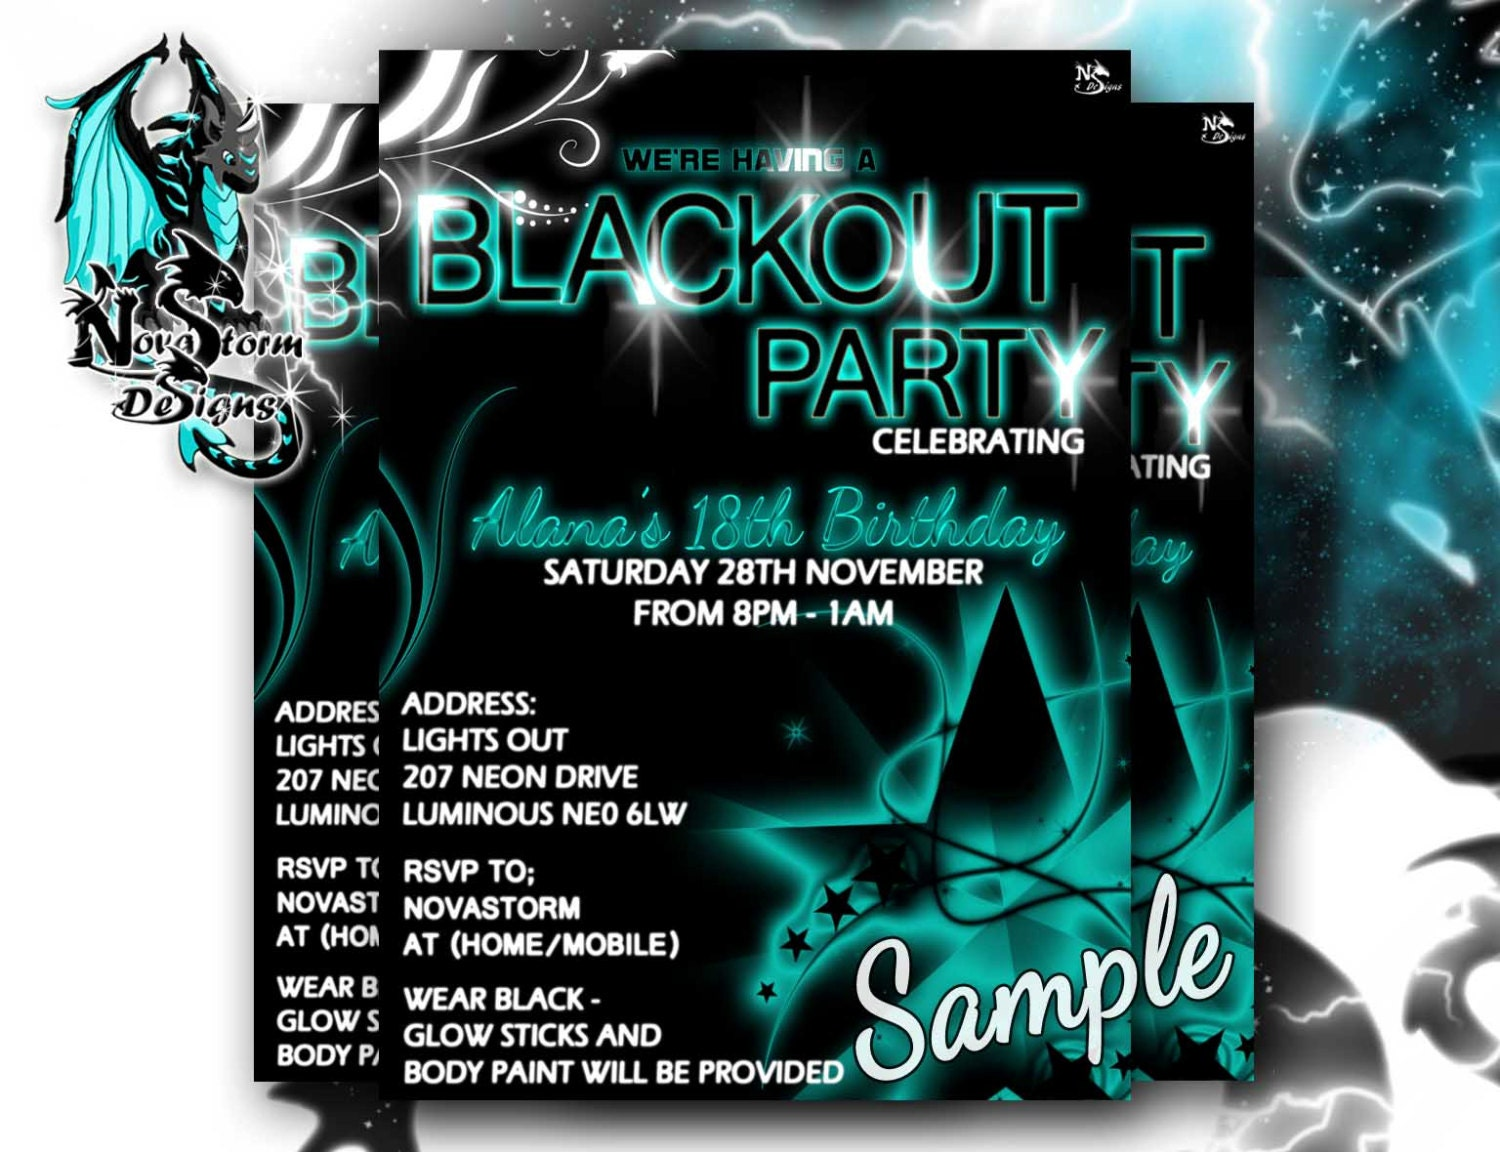 Blackout Party Invitations UV Glow/ Dance Party Blacklight